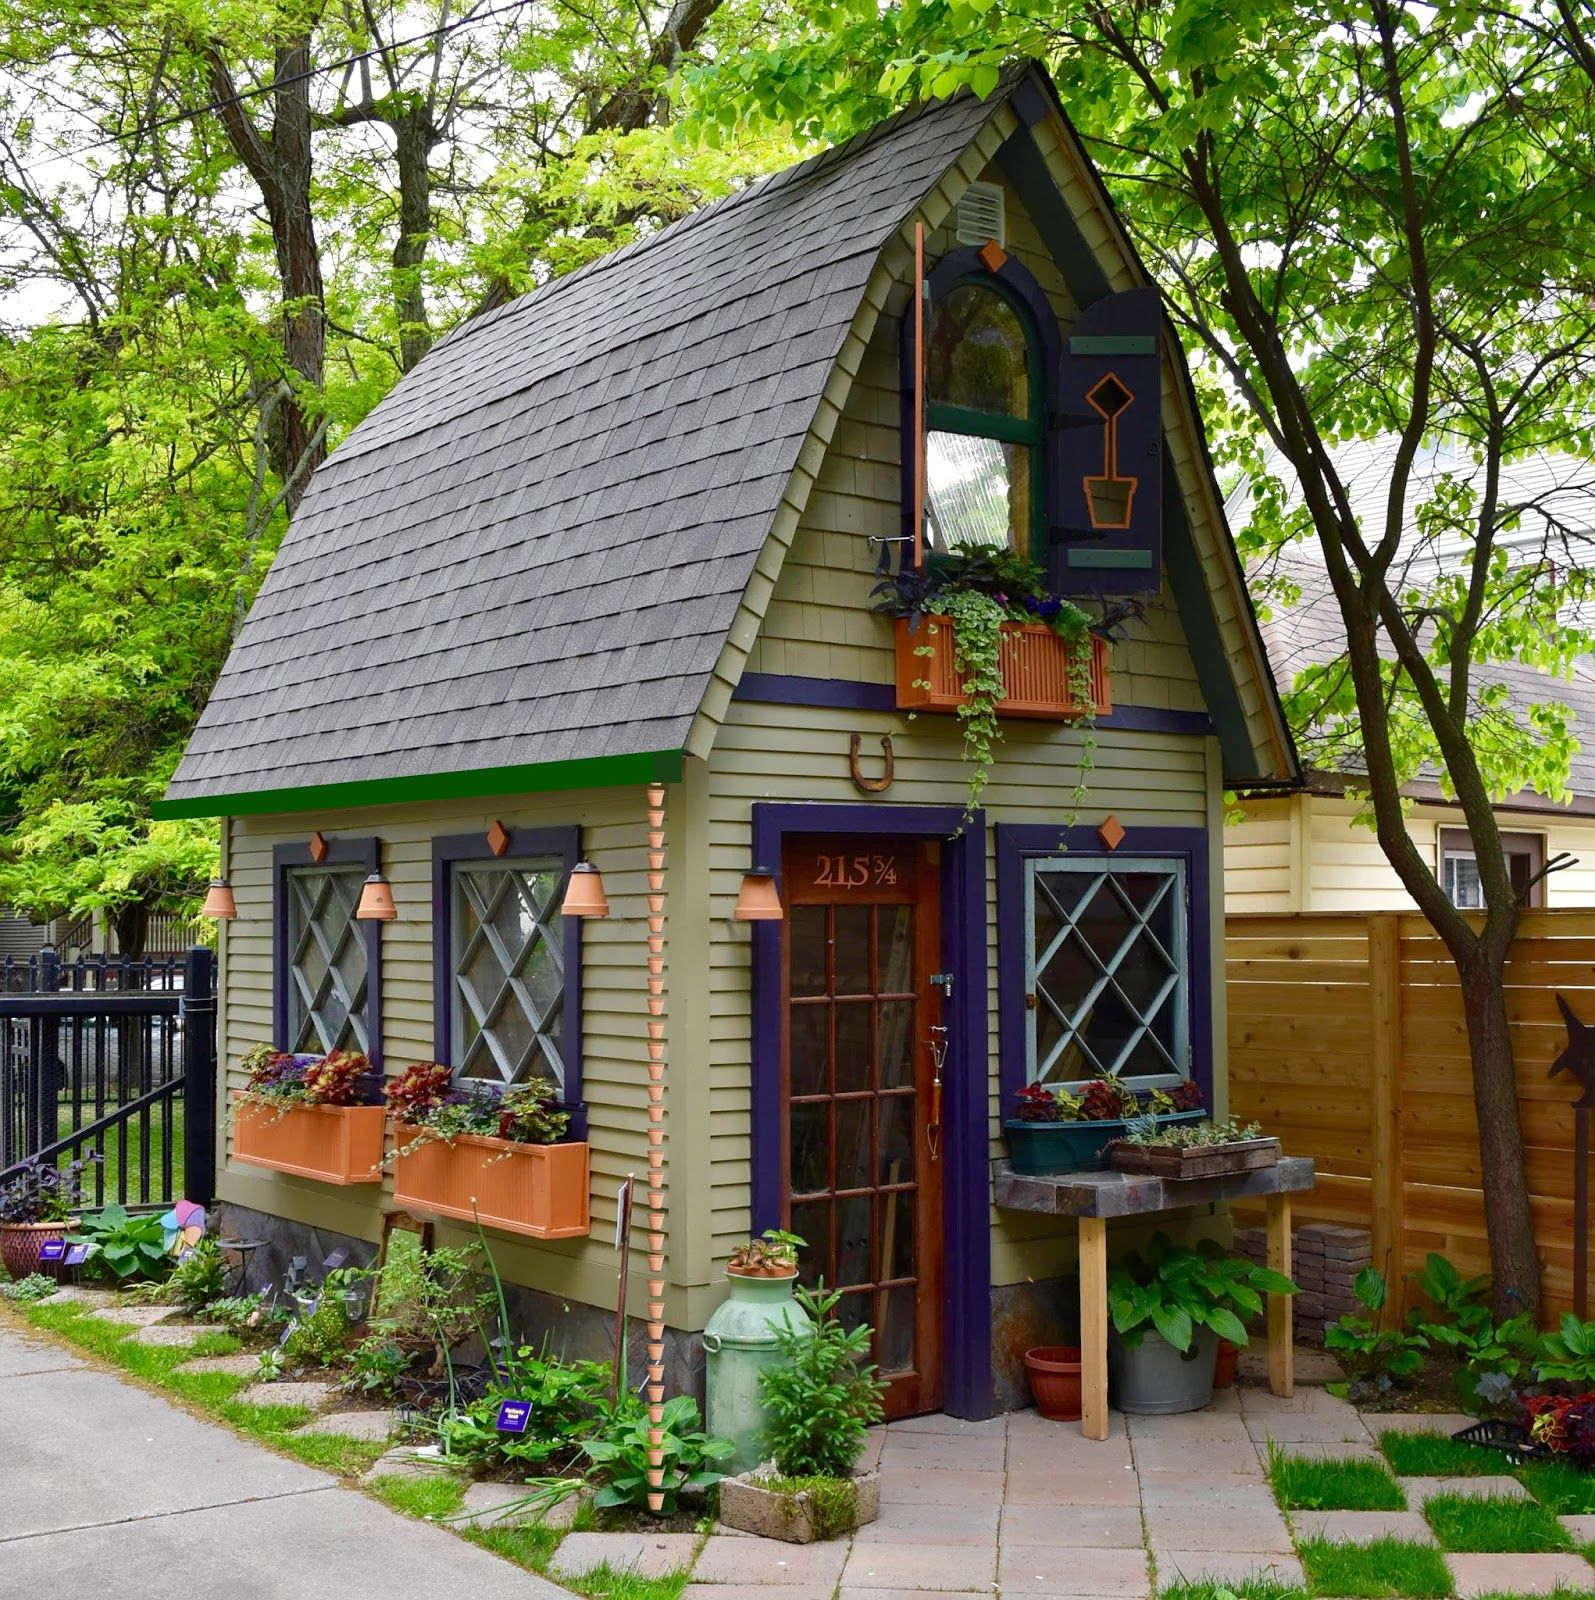 Garden Travel Ideas Inspiration And Great Buffalo Ny Gardens By The Well Traveled President Of Garden Walk Garden Tool Shed Shed Design Cabins And Cottages